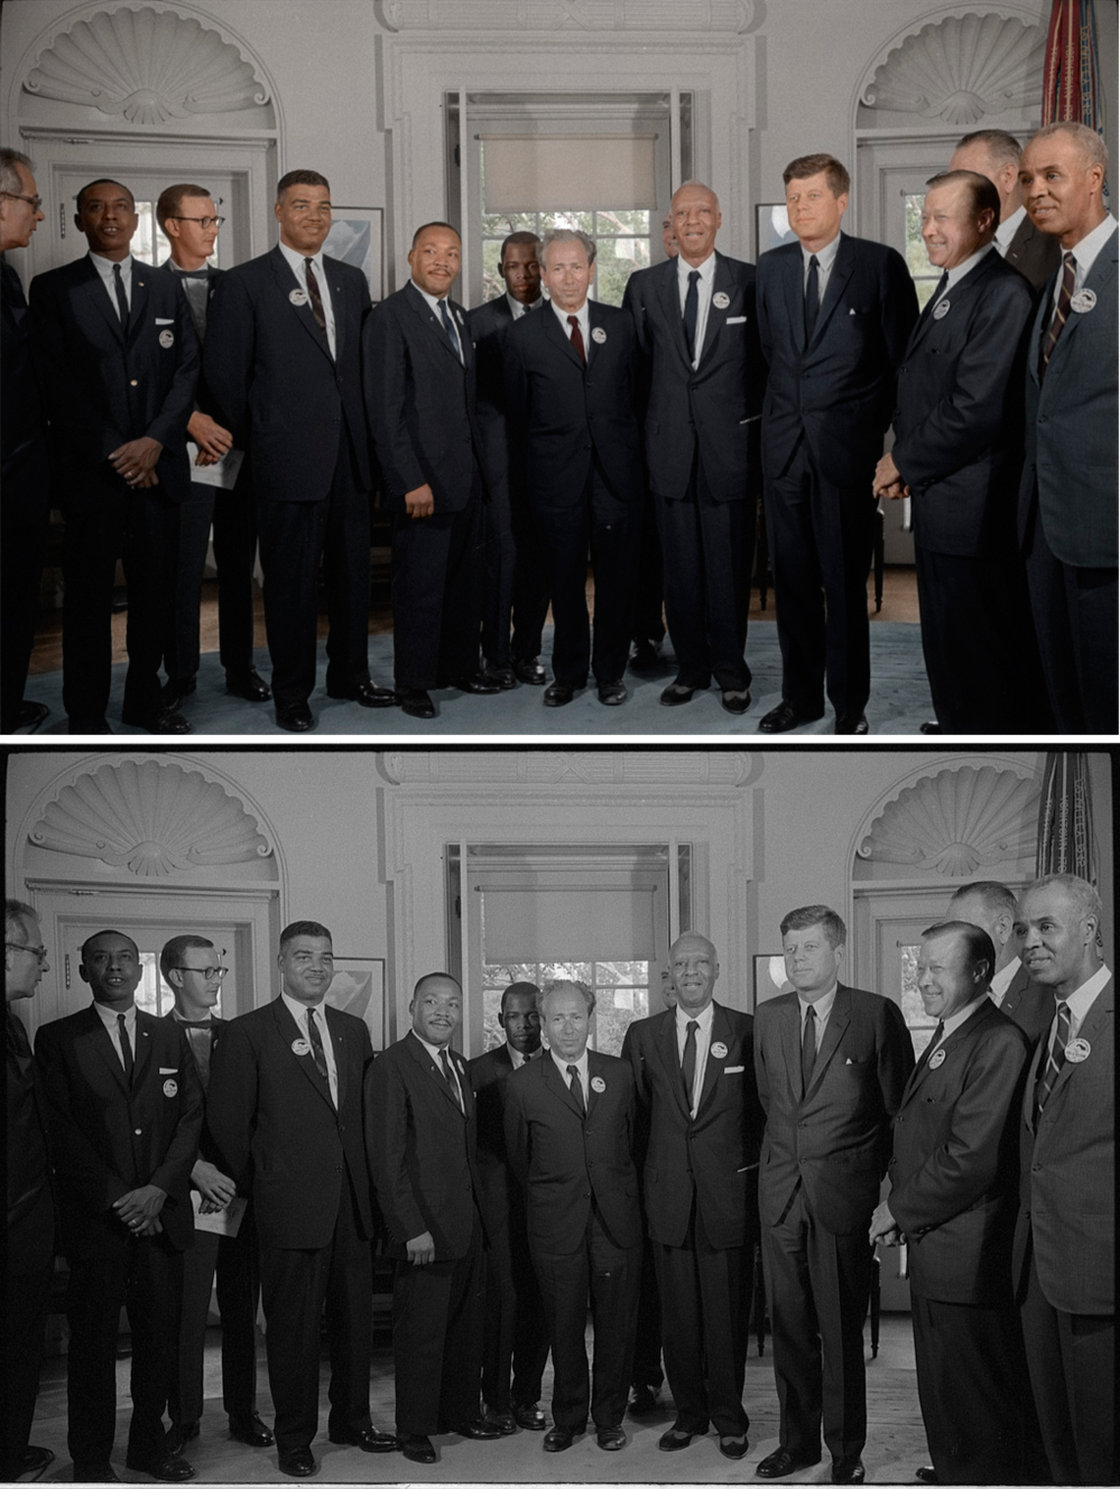 Colorized King, Randolph, Kennedy et al.jpg